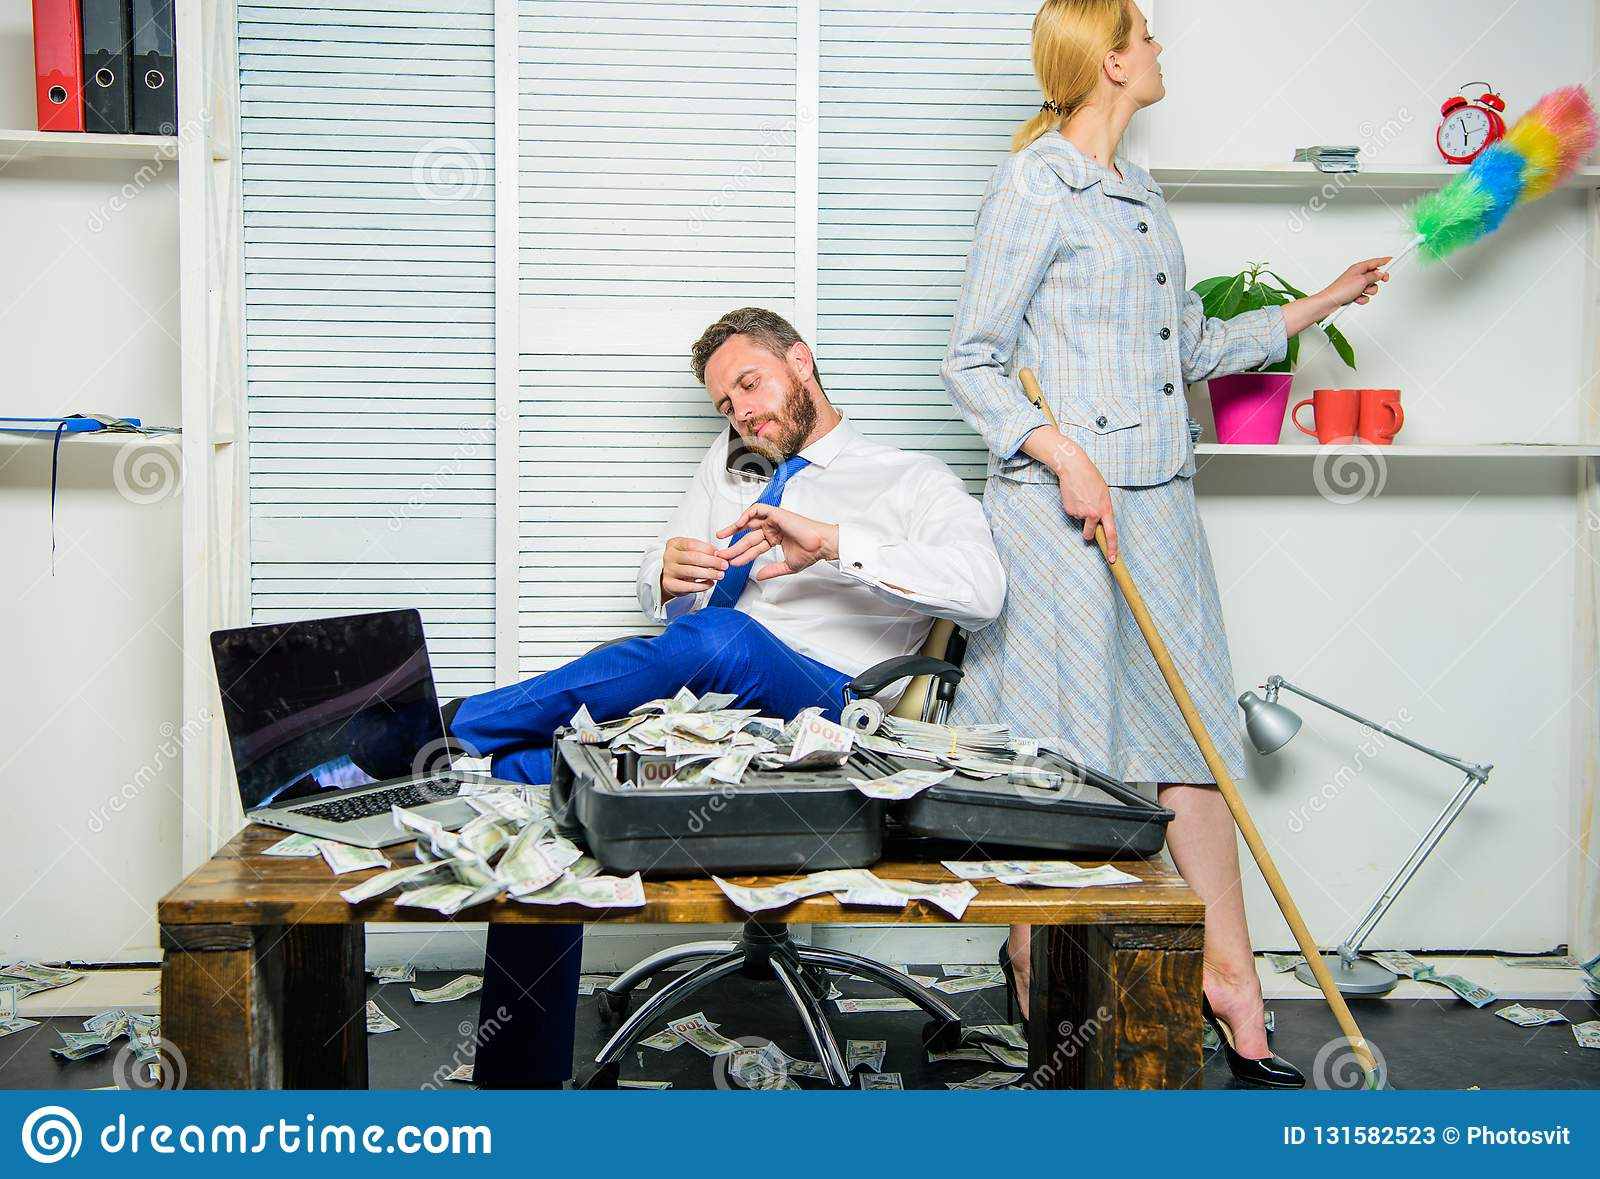 Woman cleaning up office while boss counting money. Equal rights for education work and salary. Gender discrimination in